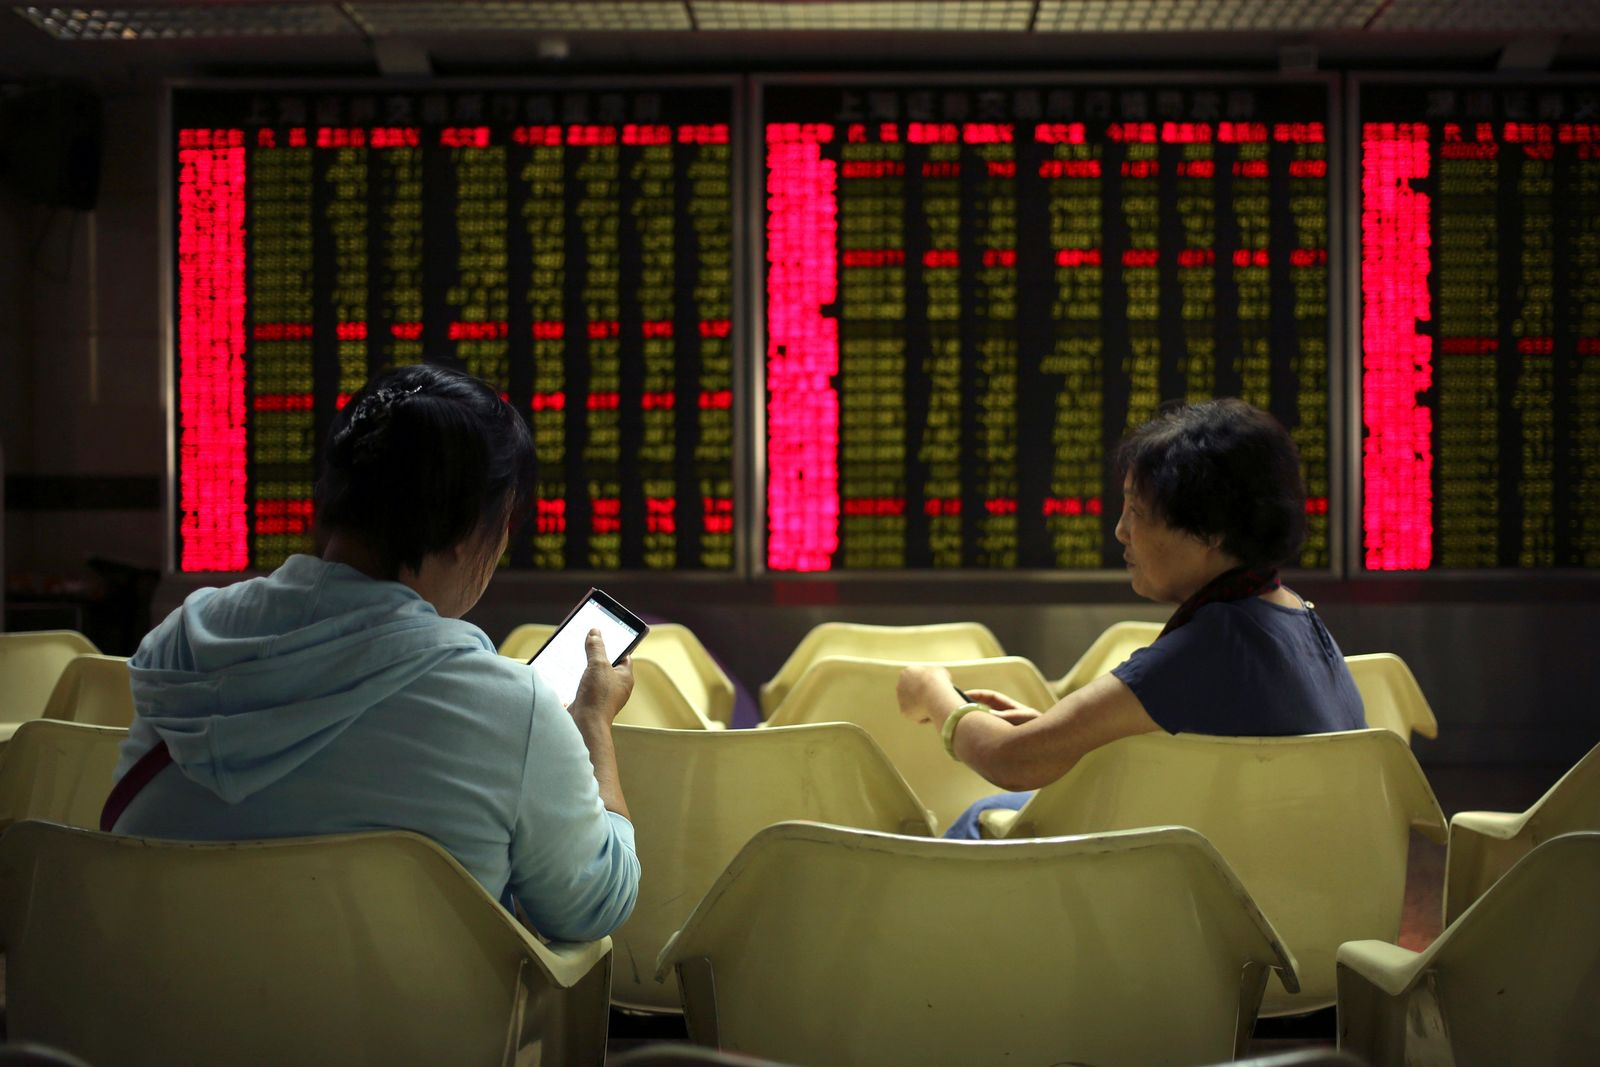 Chinese investors monitor stock prices at a brokerage house in Beijing, Friday, Aug. 2, 2019. . (AP Photo/Mark Schiefelbein)